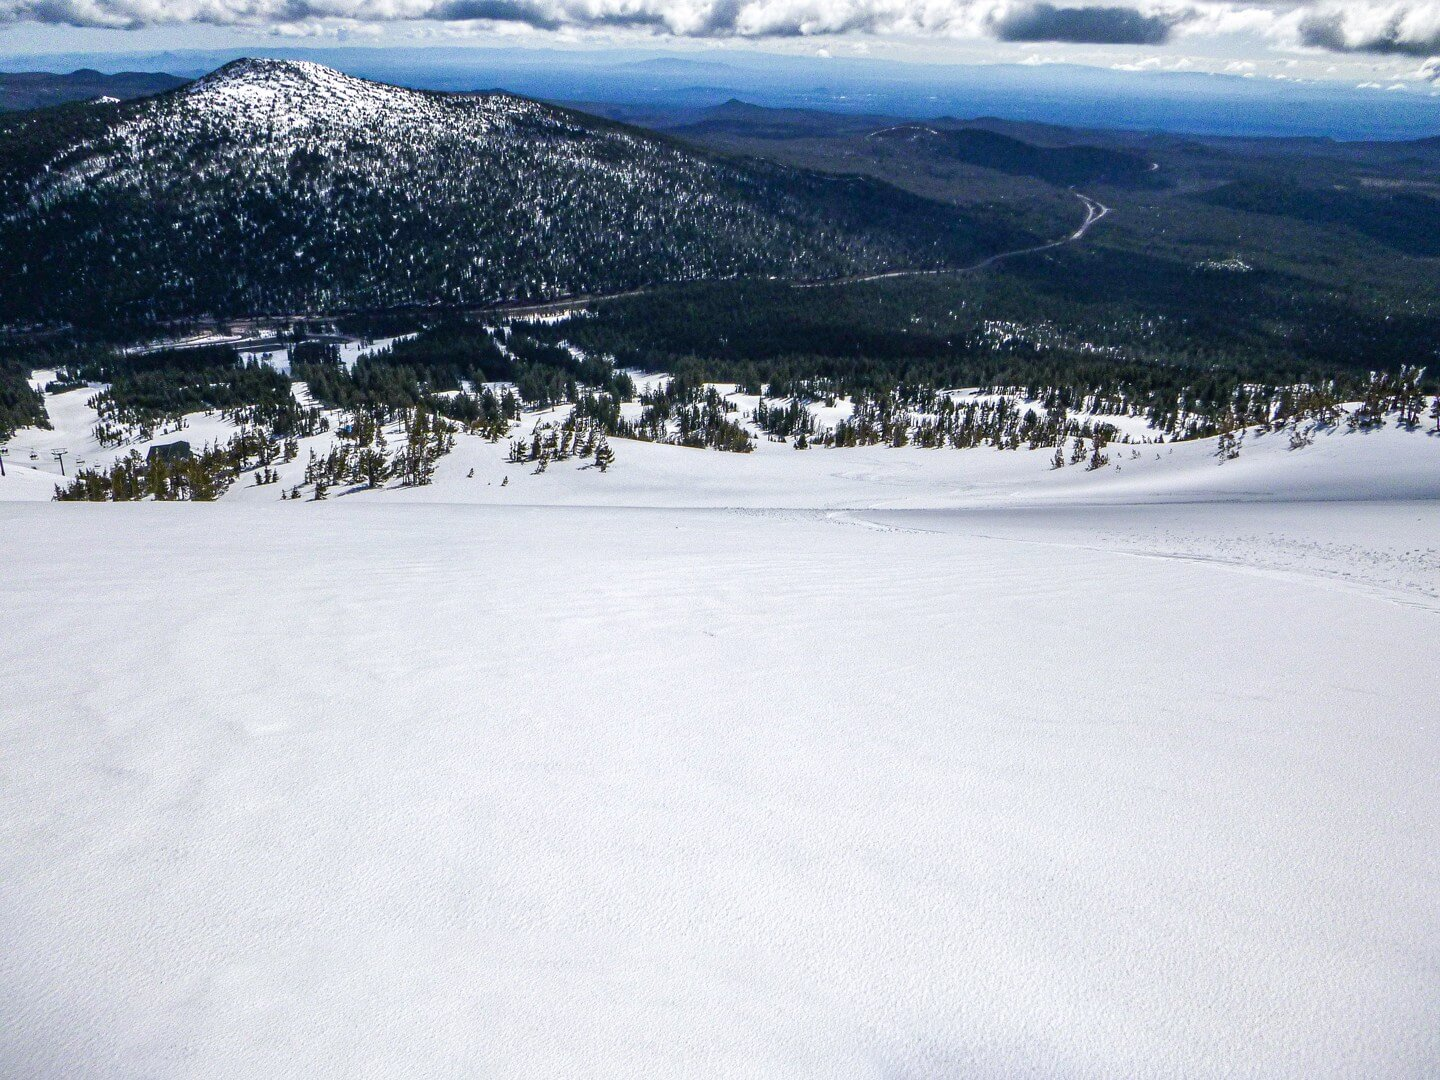 corn snow at Mt Bachelor in May